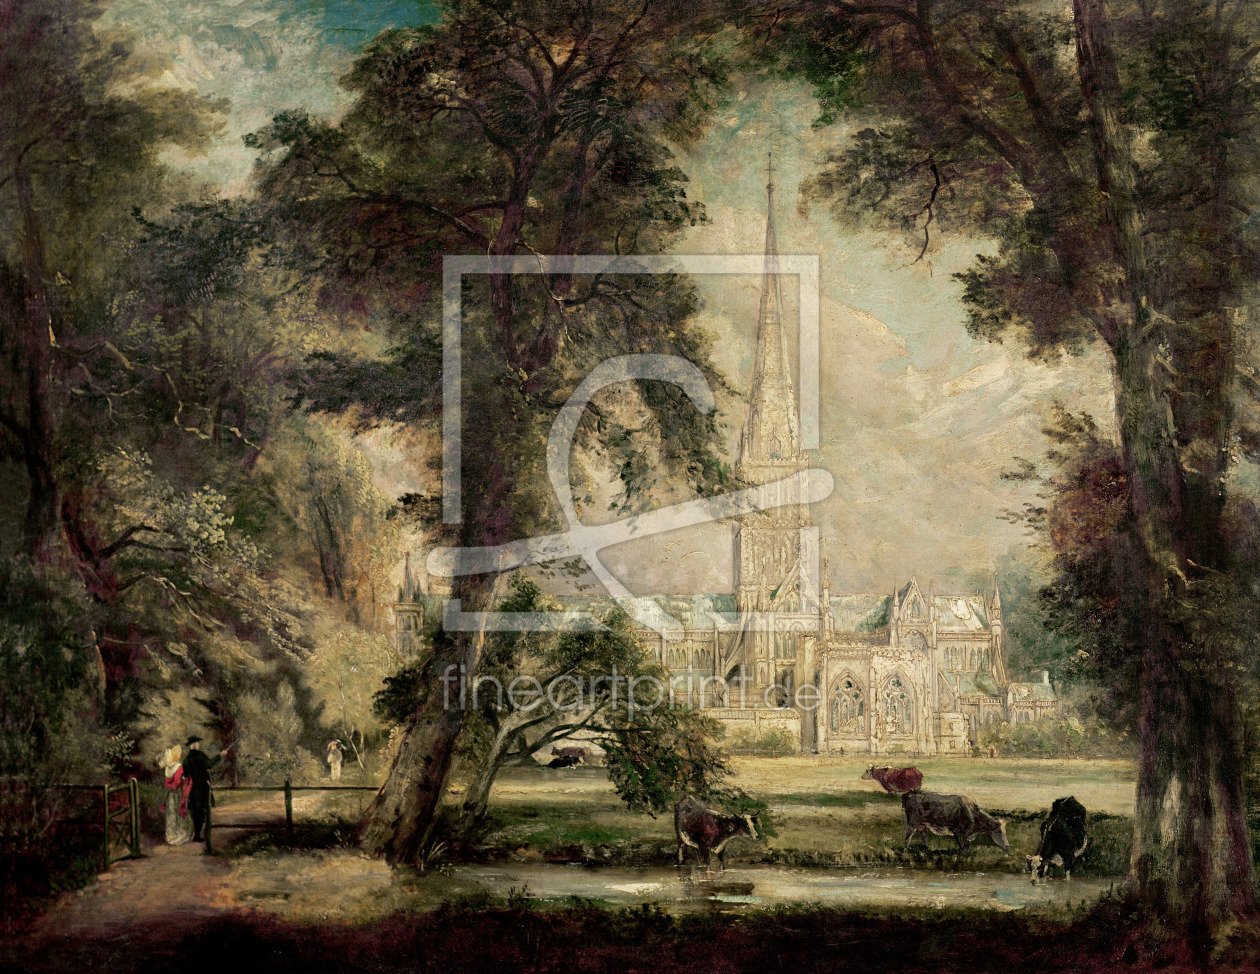 Bild-Nr.: 31000240 Salisbury Cathedral from the Bishop's Grounds, c.1822-23 erstellt von Constable, John